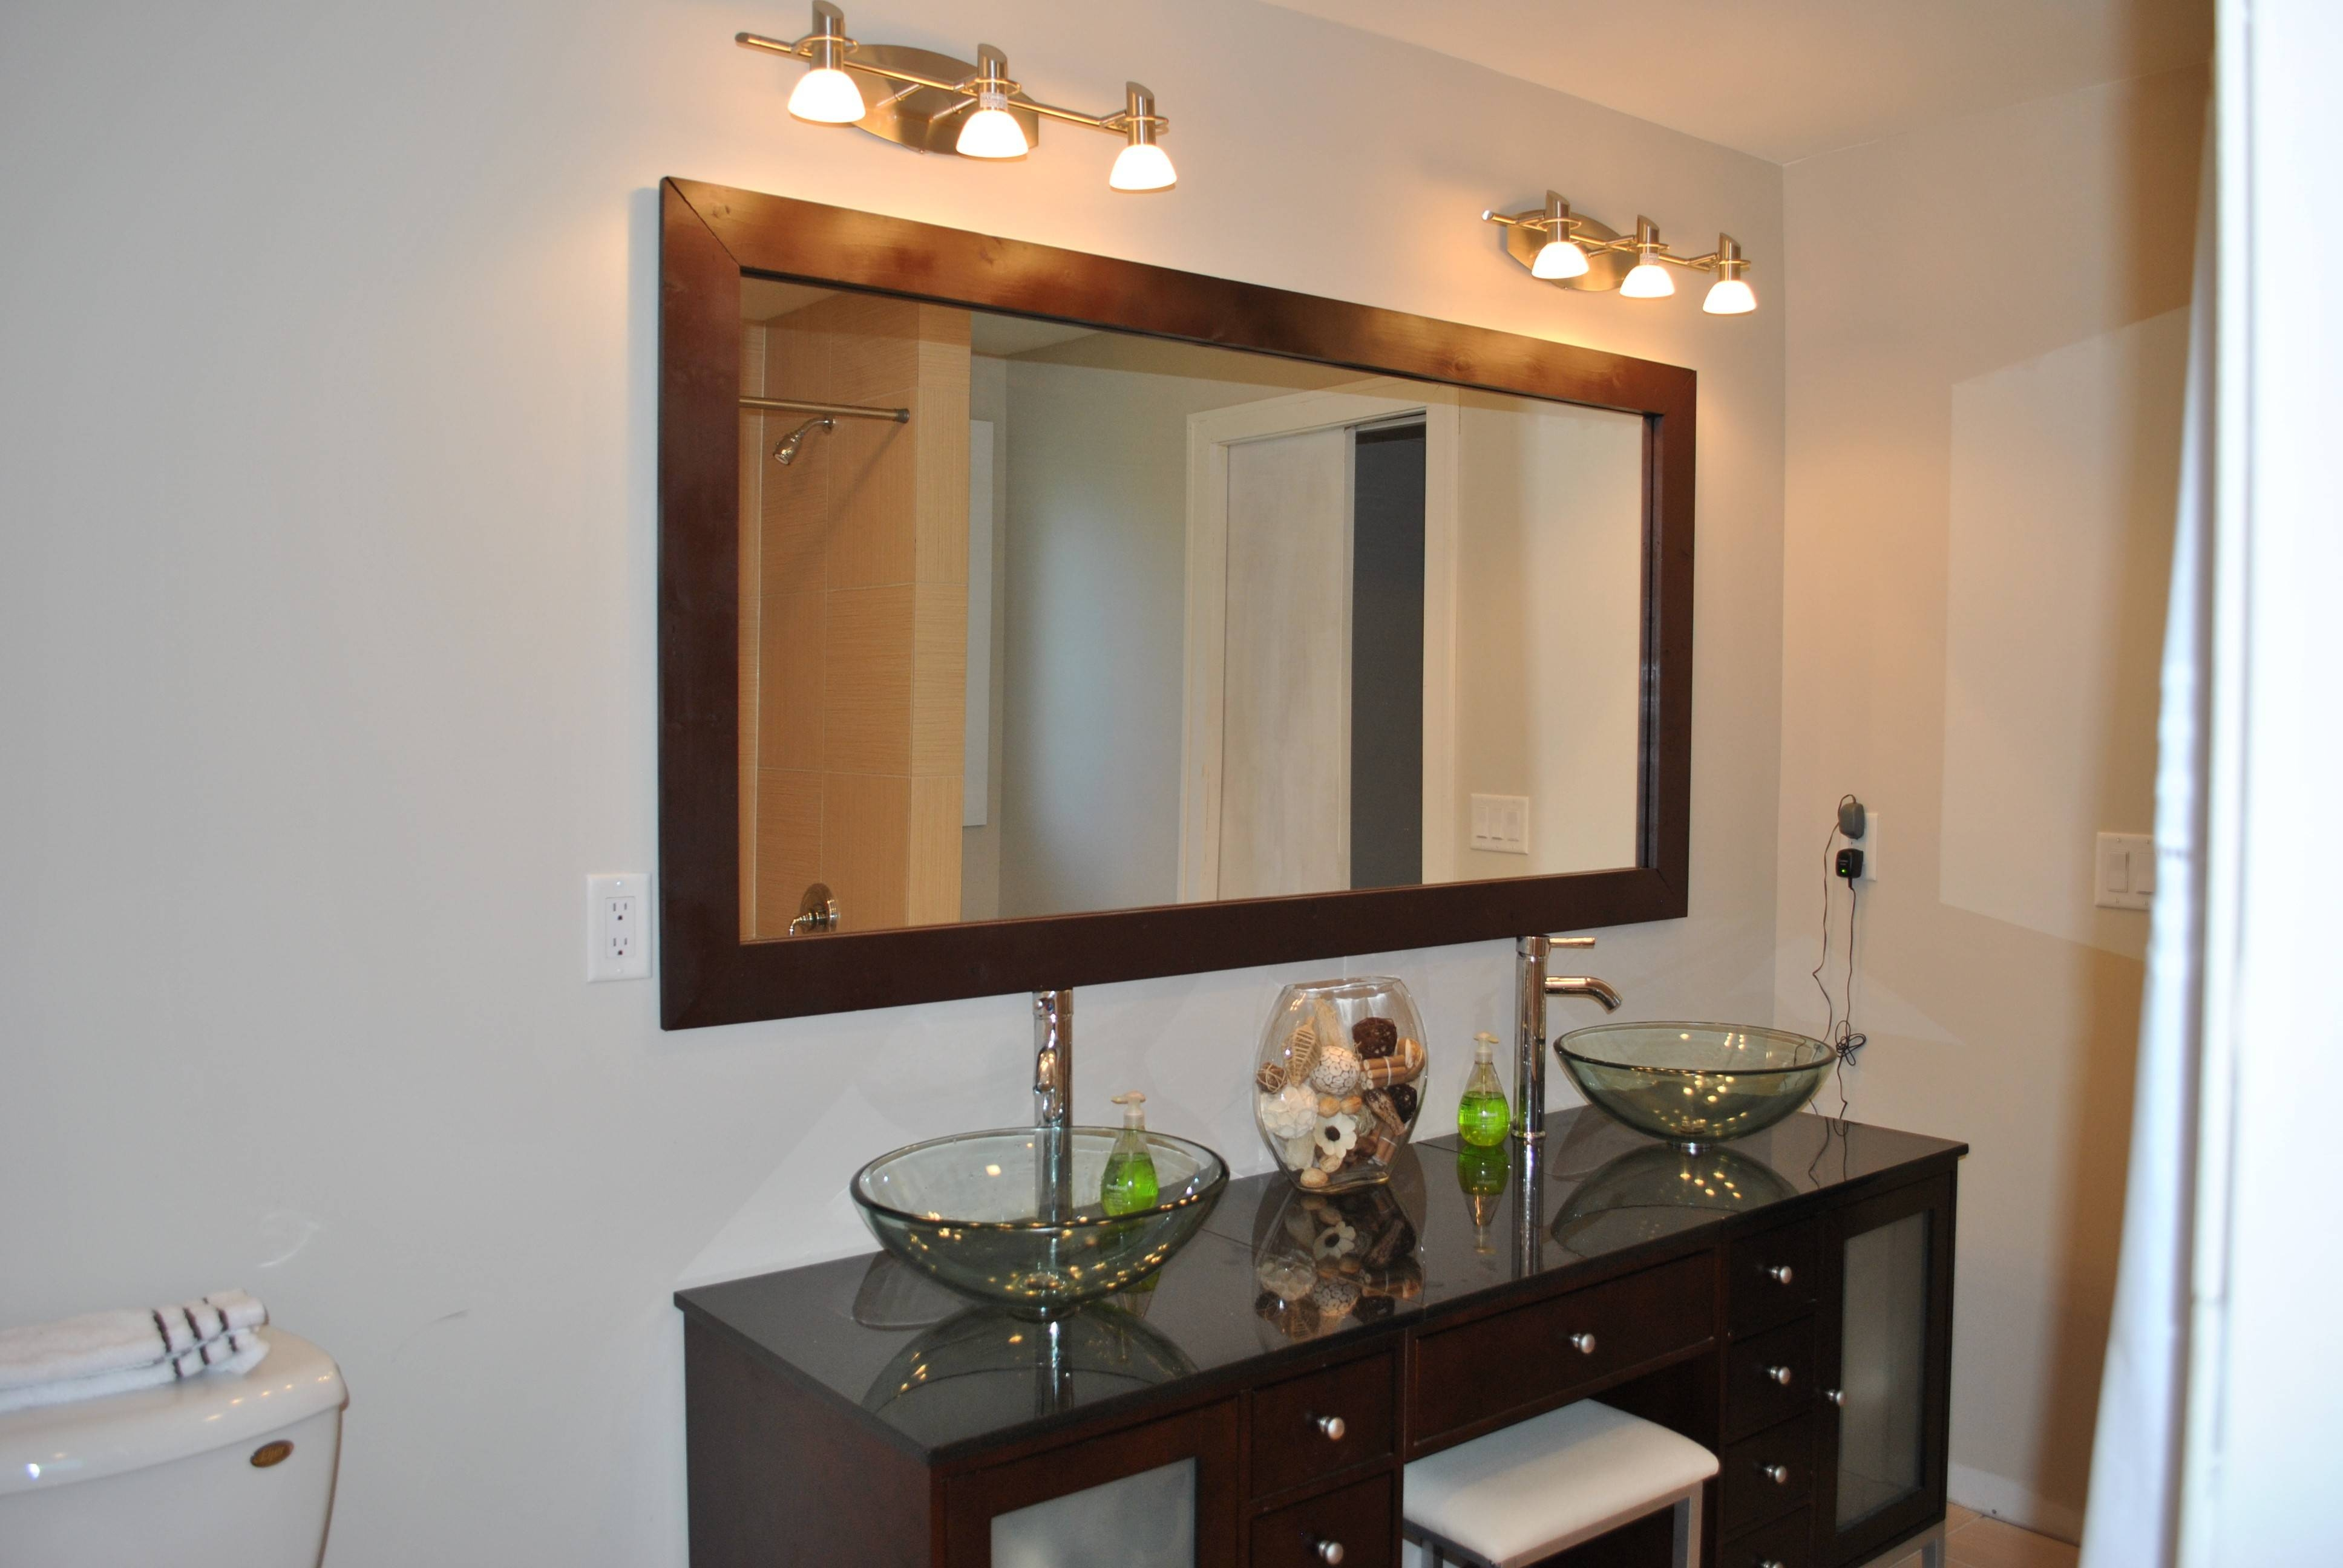 Oak Framed Bathroom Mirrors 118 Stunning Decor With Small Vanity with Large Oak Framed Mirrors (Image 10 of 25)